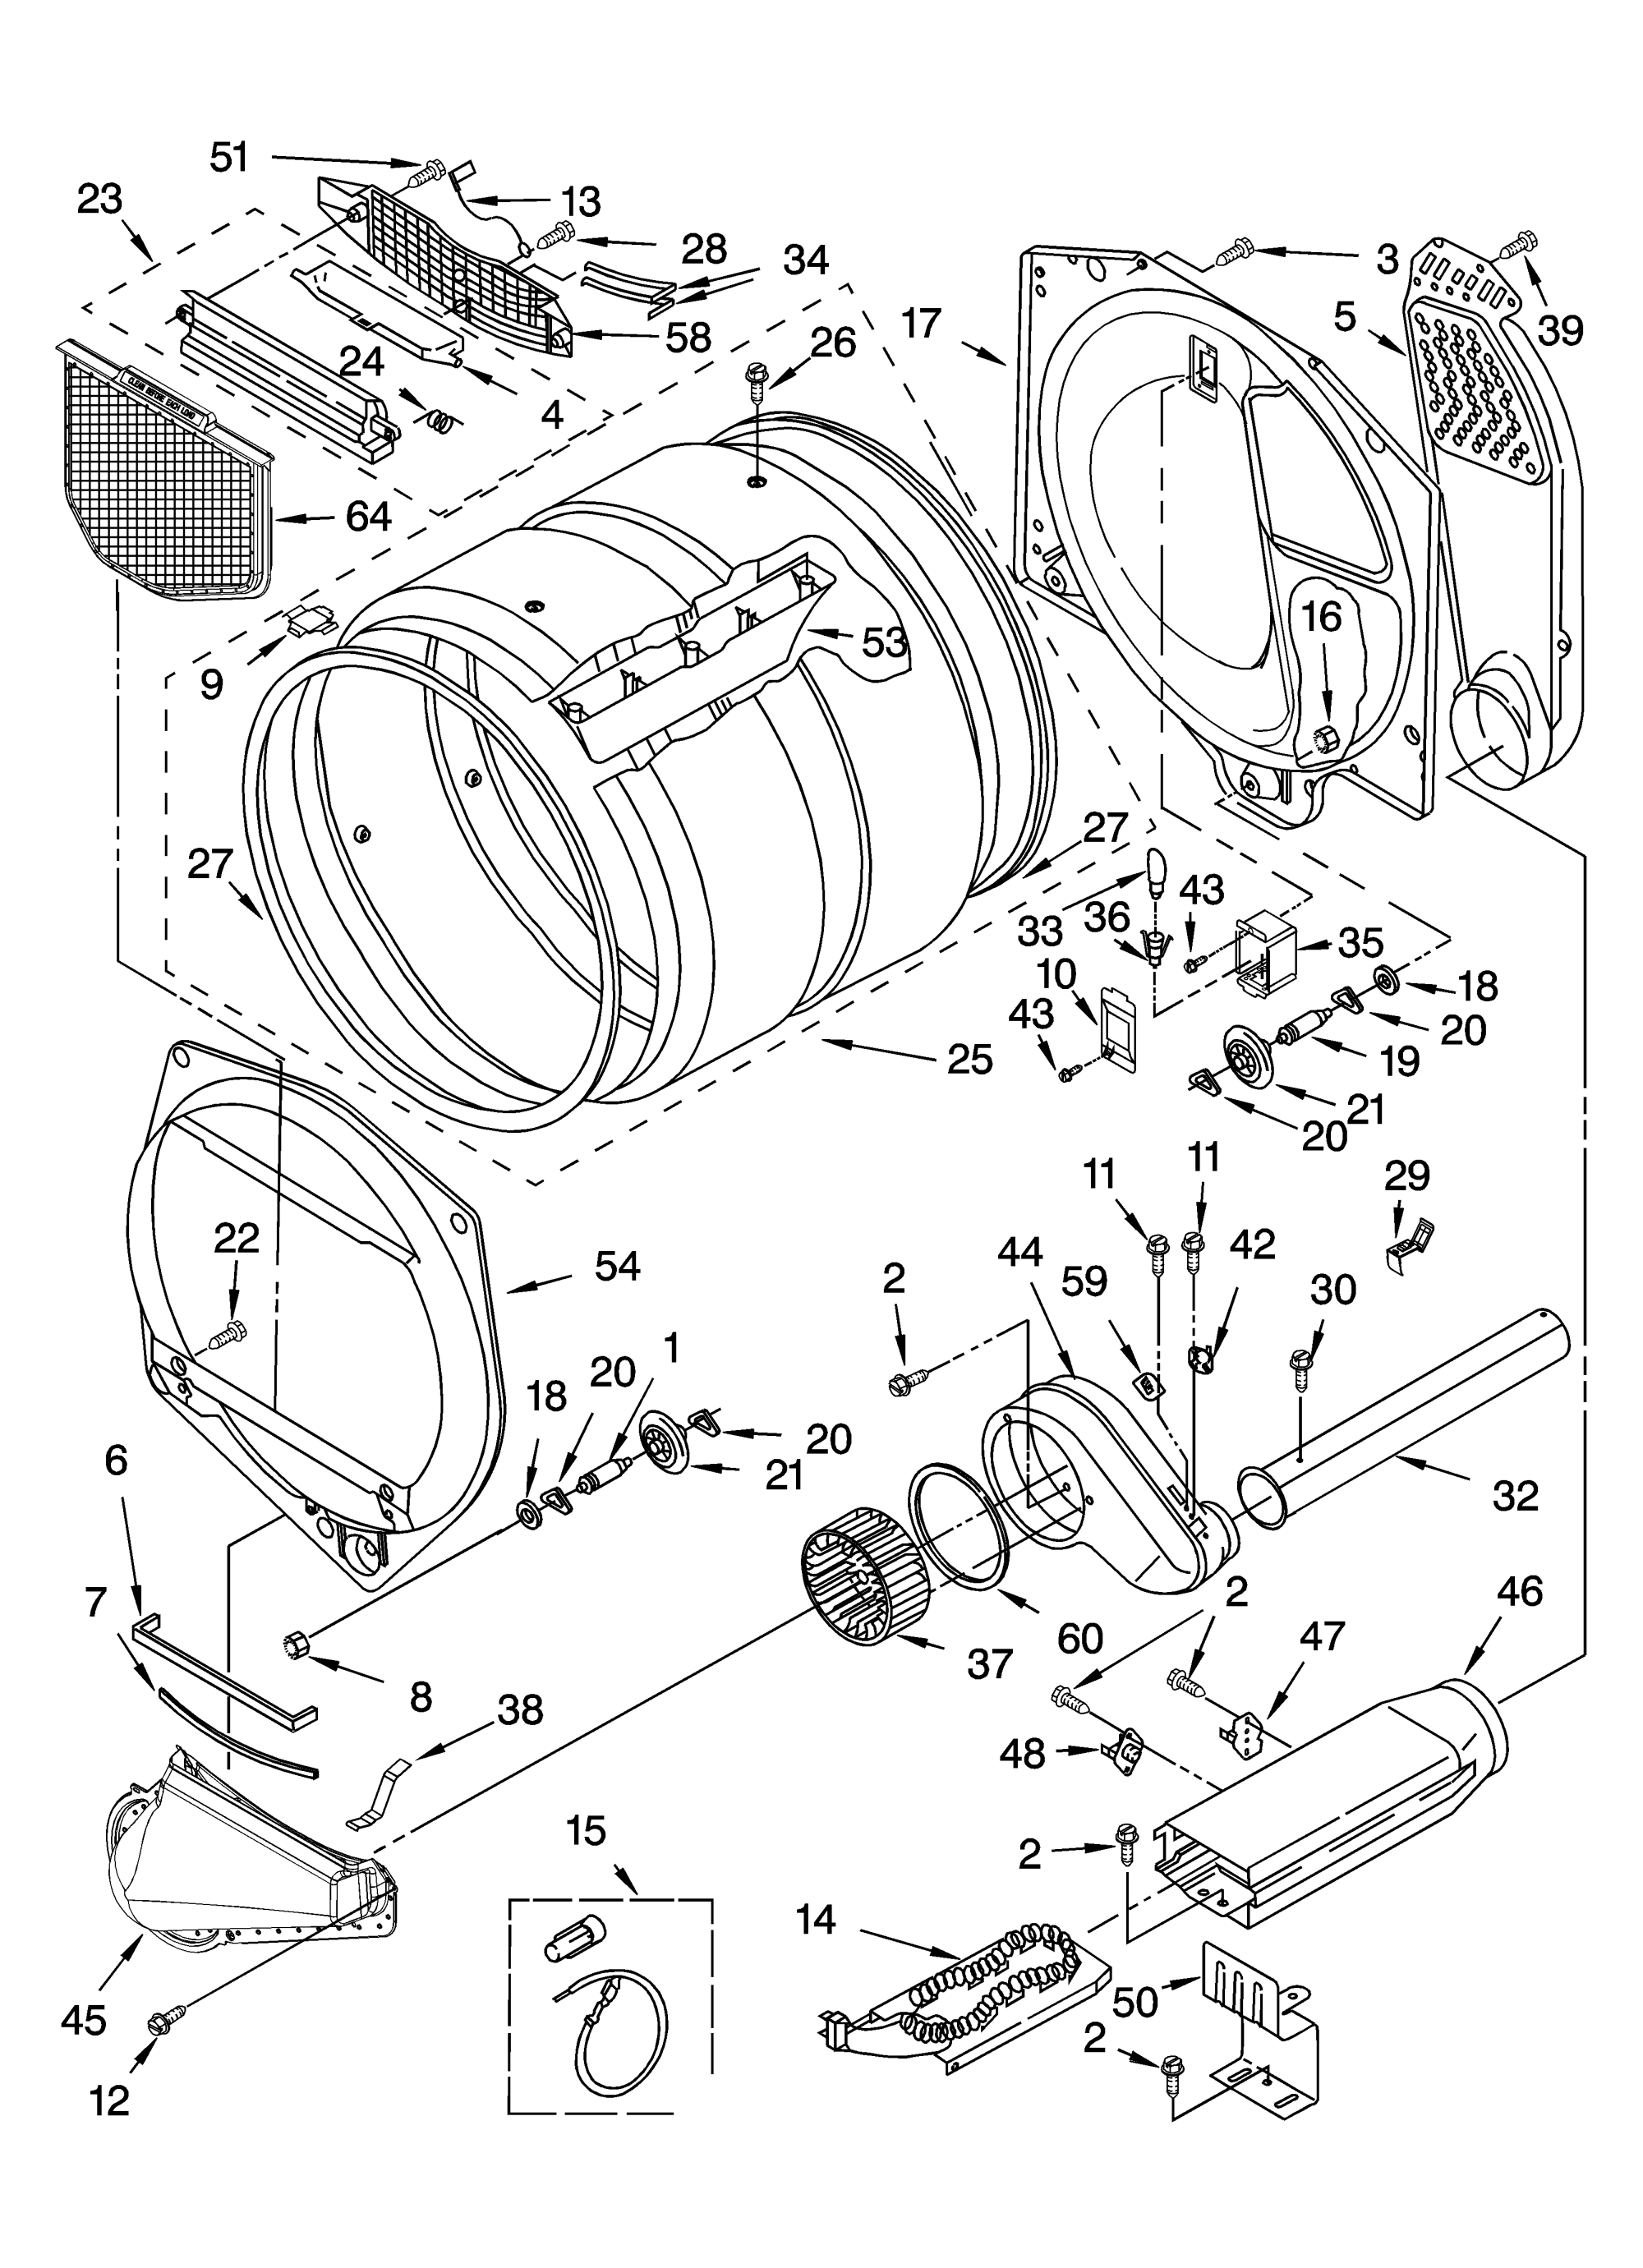 hight resolution of sear kenmore dryer wiring diagram